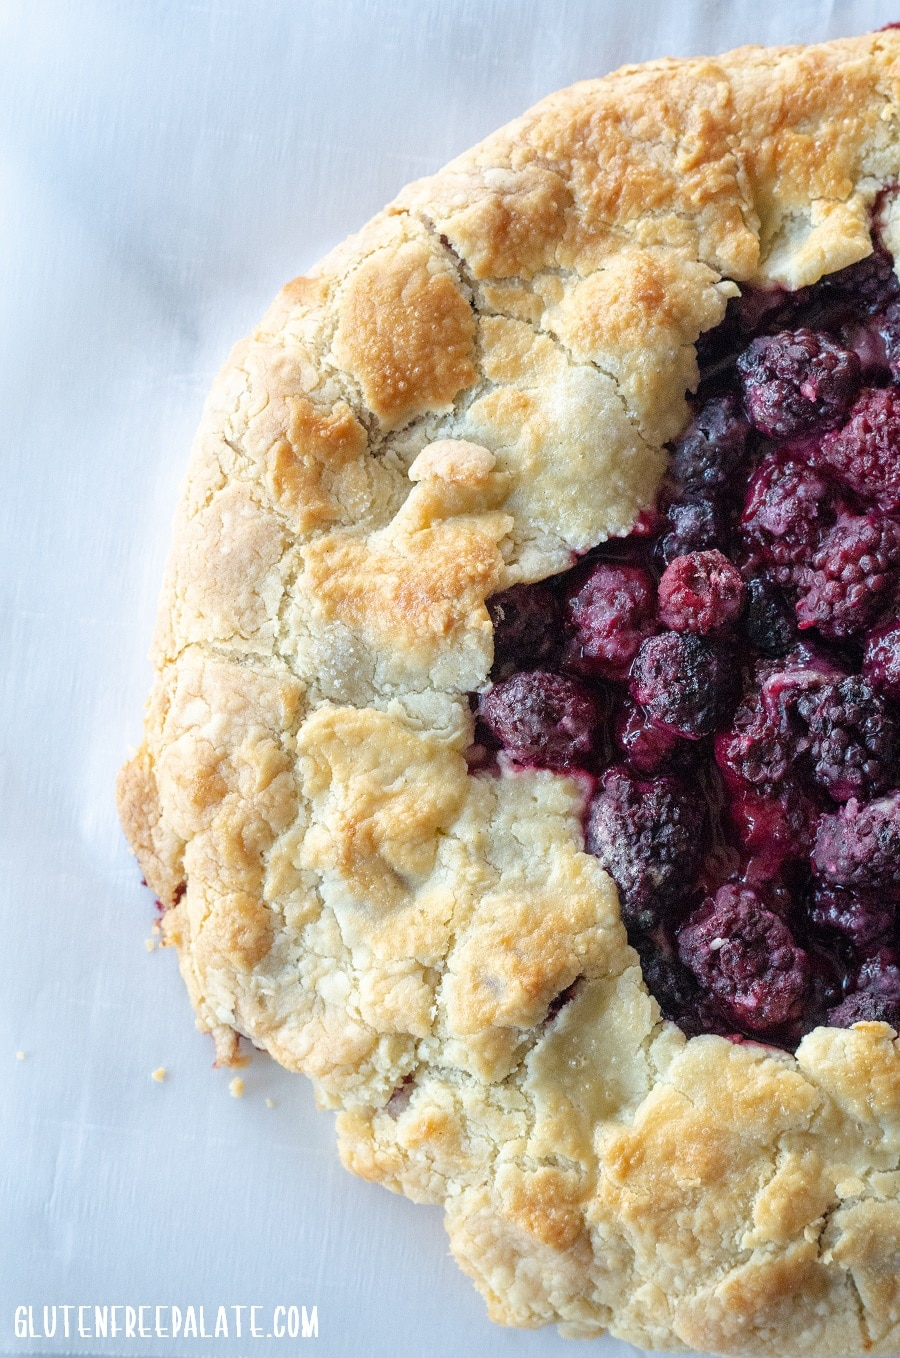 a close up of the side of a blackberry tart on a piece of parchment paper